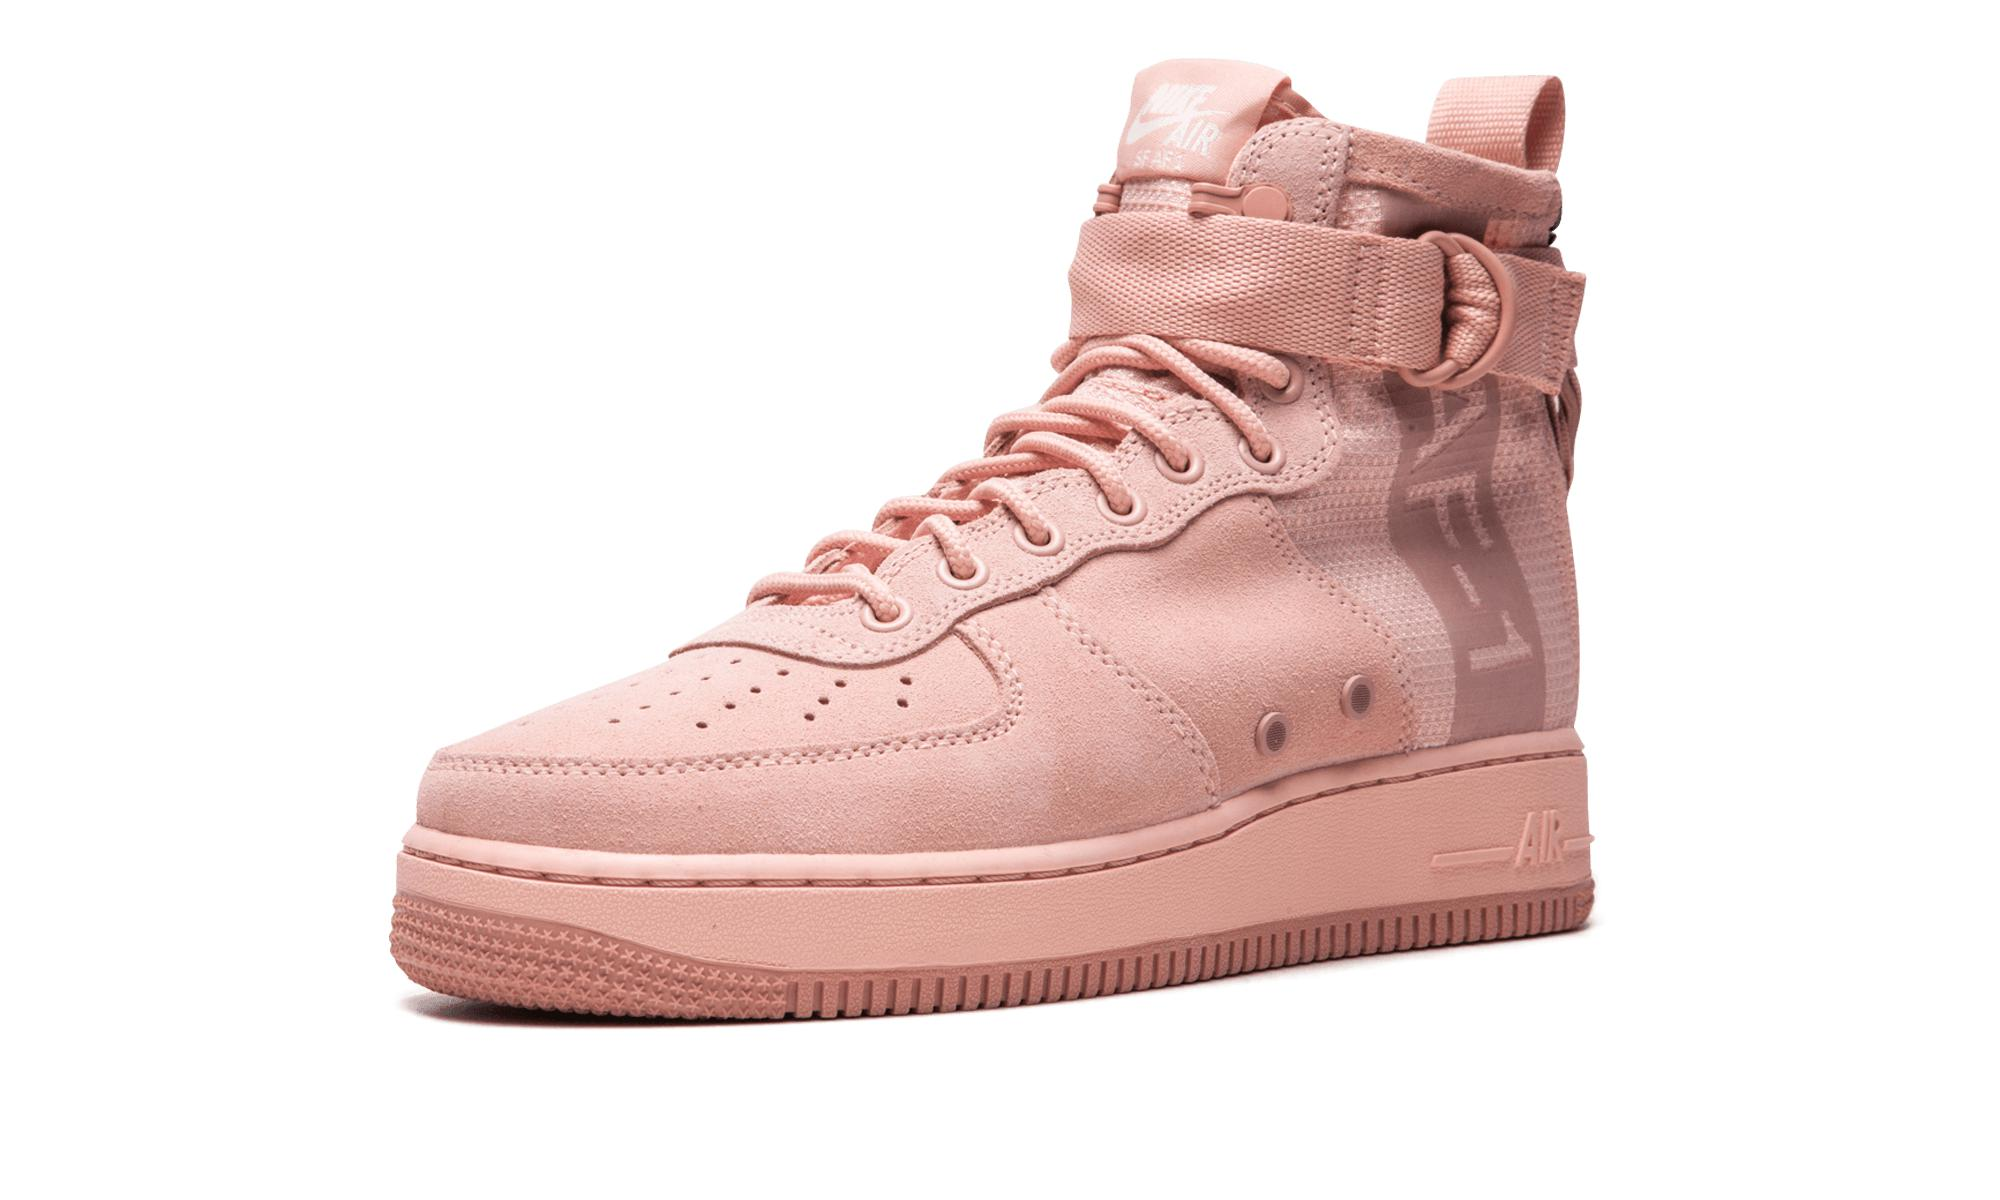 buy online beffc afd82 Nike Sf Af1 Mid Suede in Pink for Men - Save 28% - Lyst